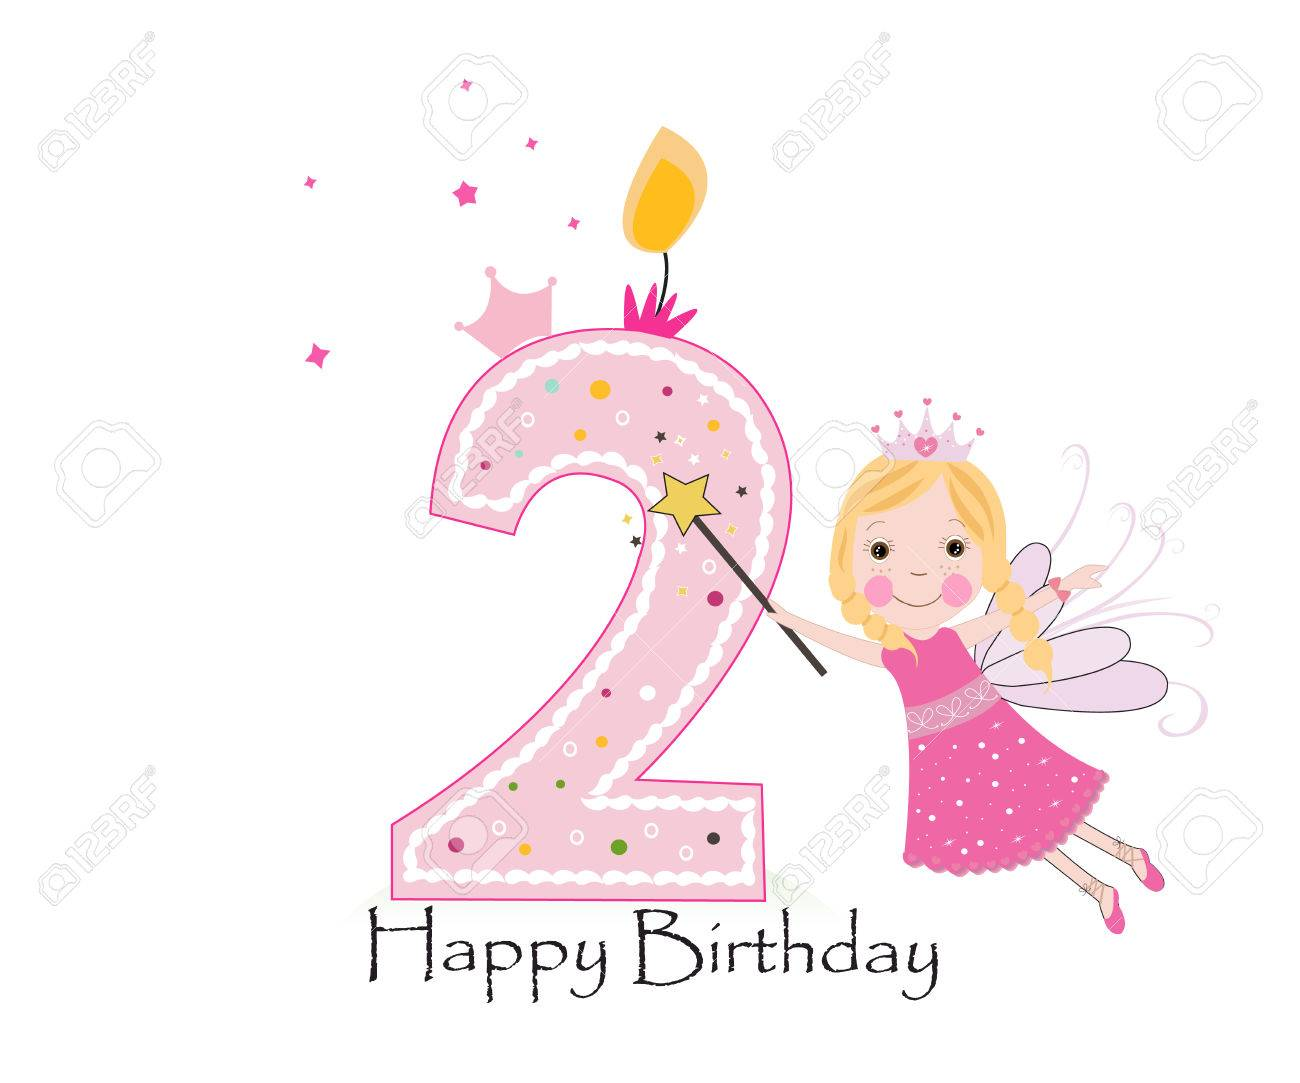 Happy second birthday candle baby girl greeting card with fairy happy second birthday candle baby girl greeting card with fairy tale vector background stock vector kristyandbryce Image collections